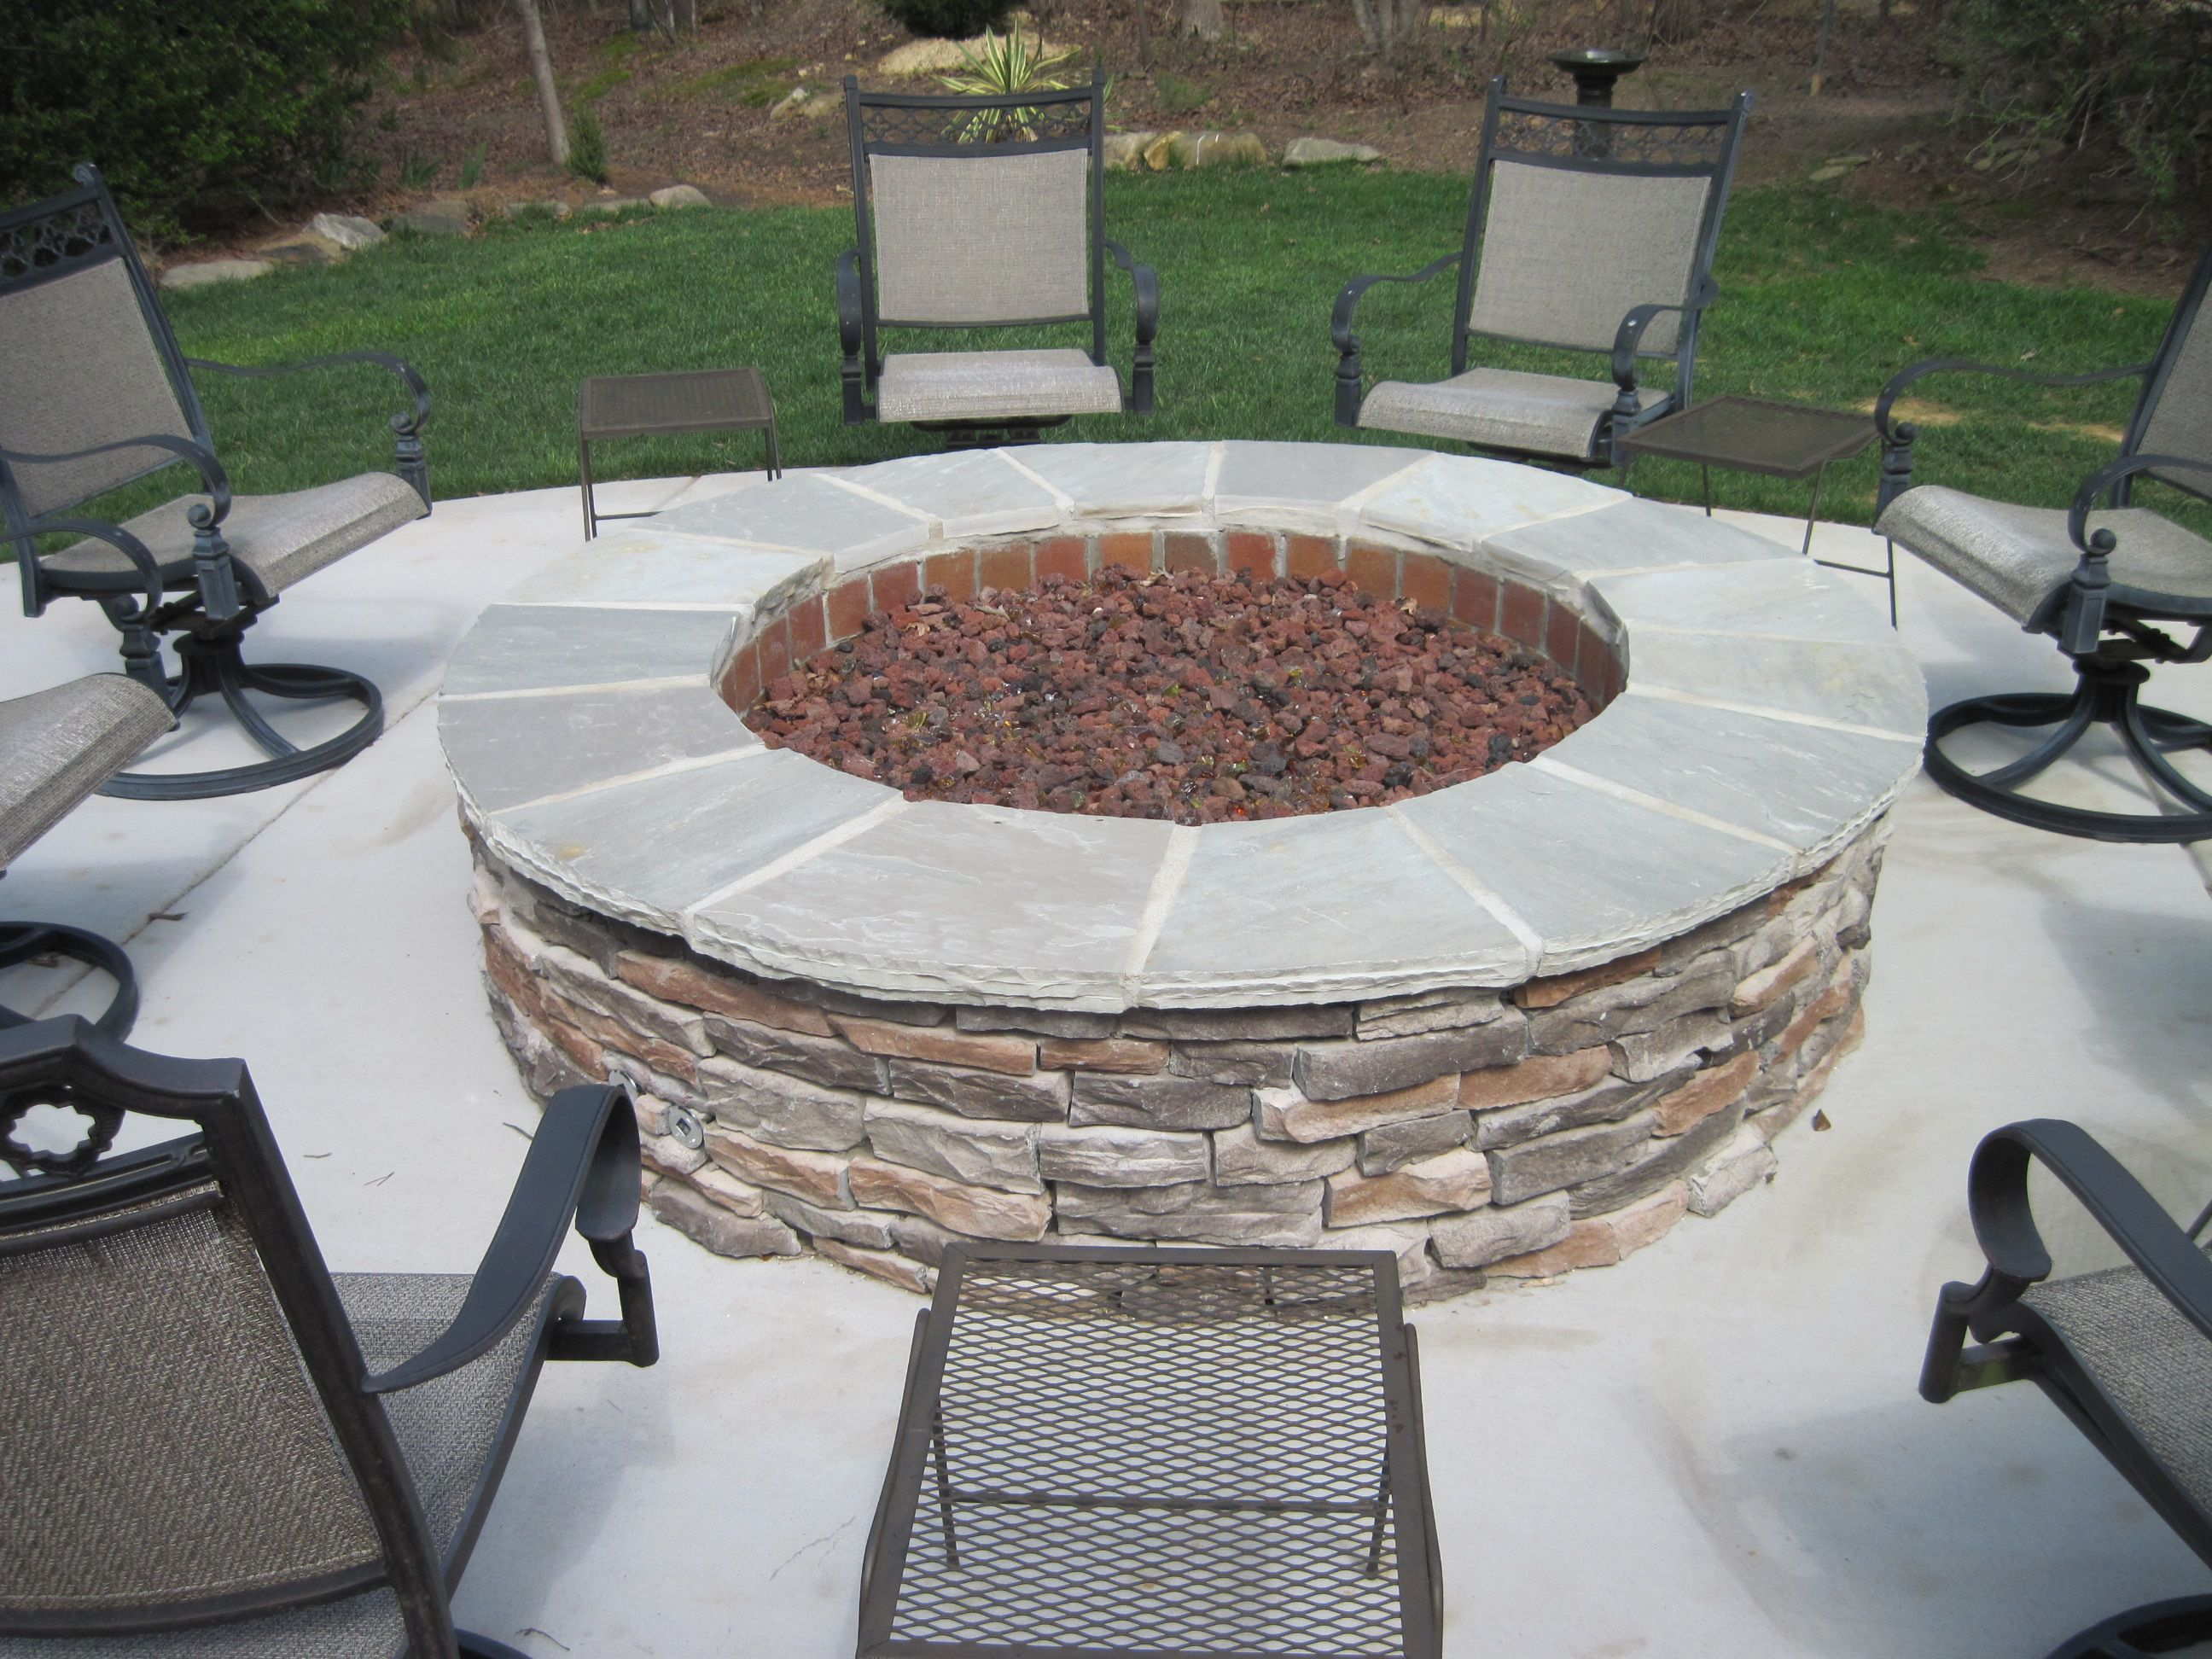 0d22e50a9fb81e0b41be5ba5b527e630 Top Result 50 Lovely Outdoor Gas Fire Bowl